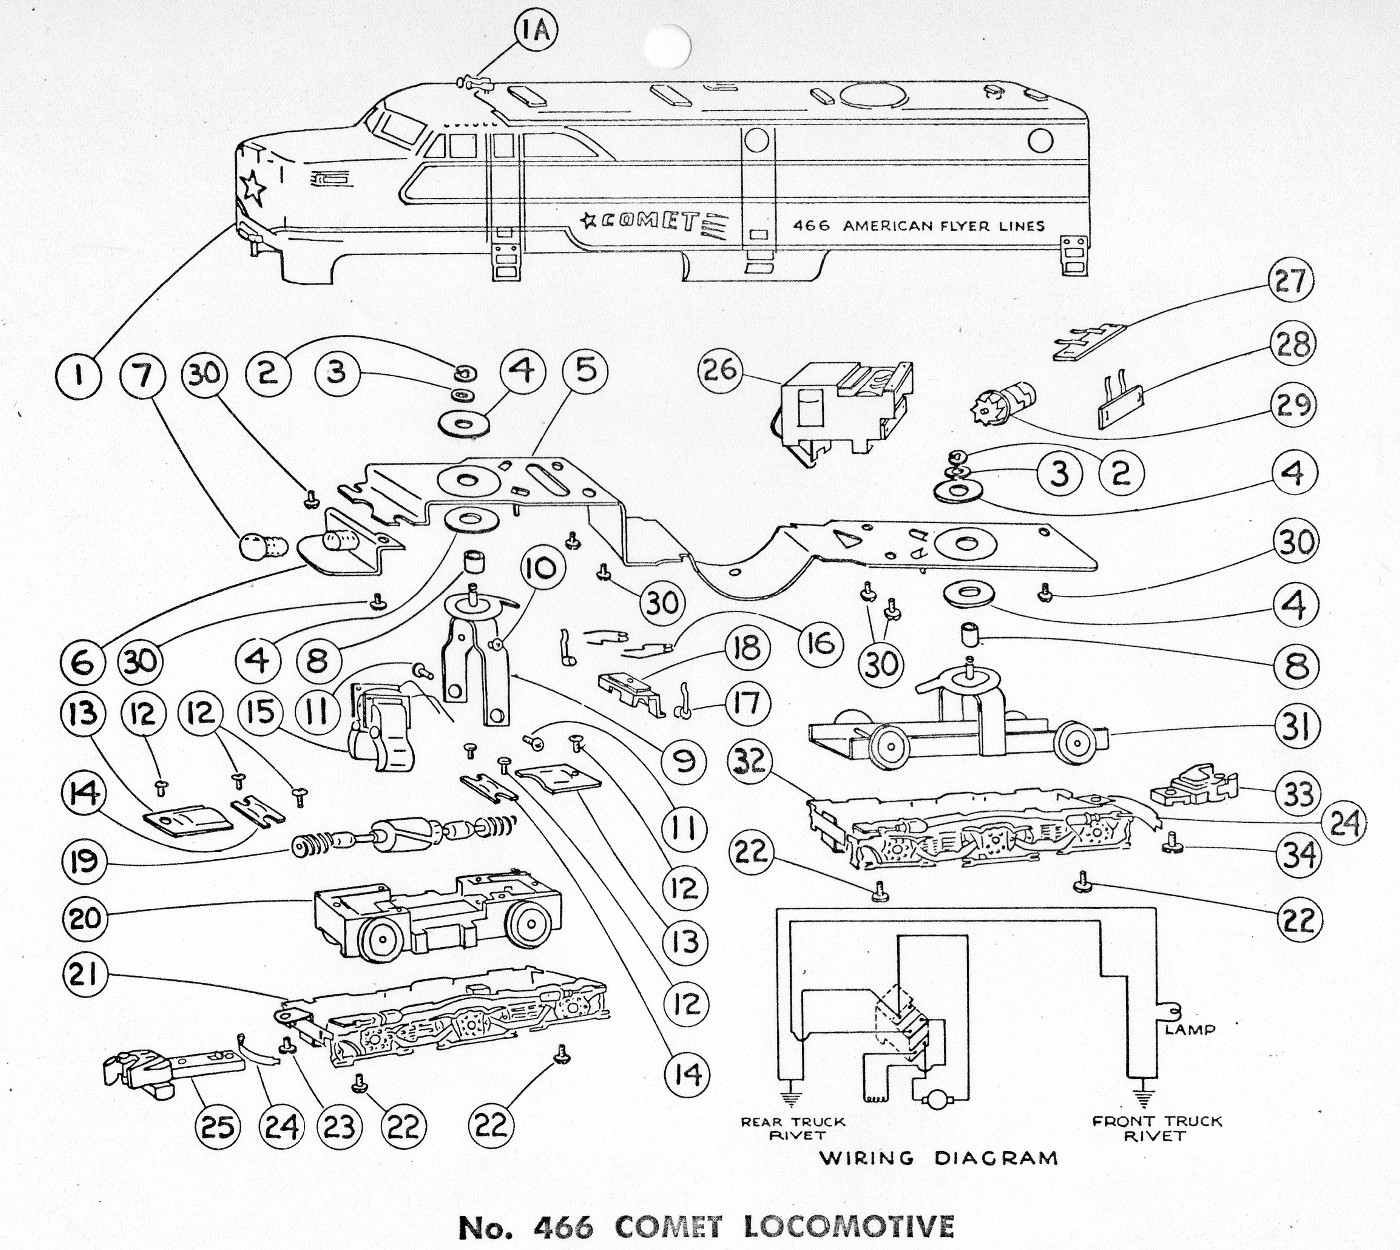 Lionel 497 Wiring Diagram Lionel Locomotive Wiring-Diagram